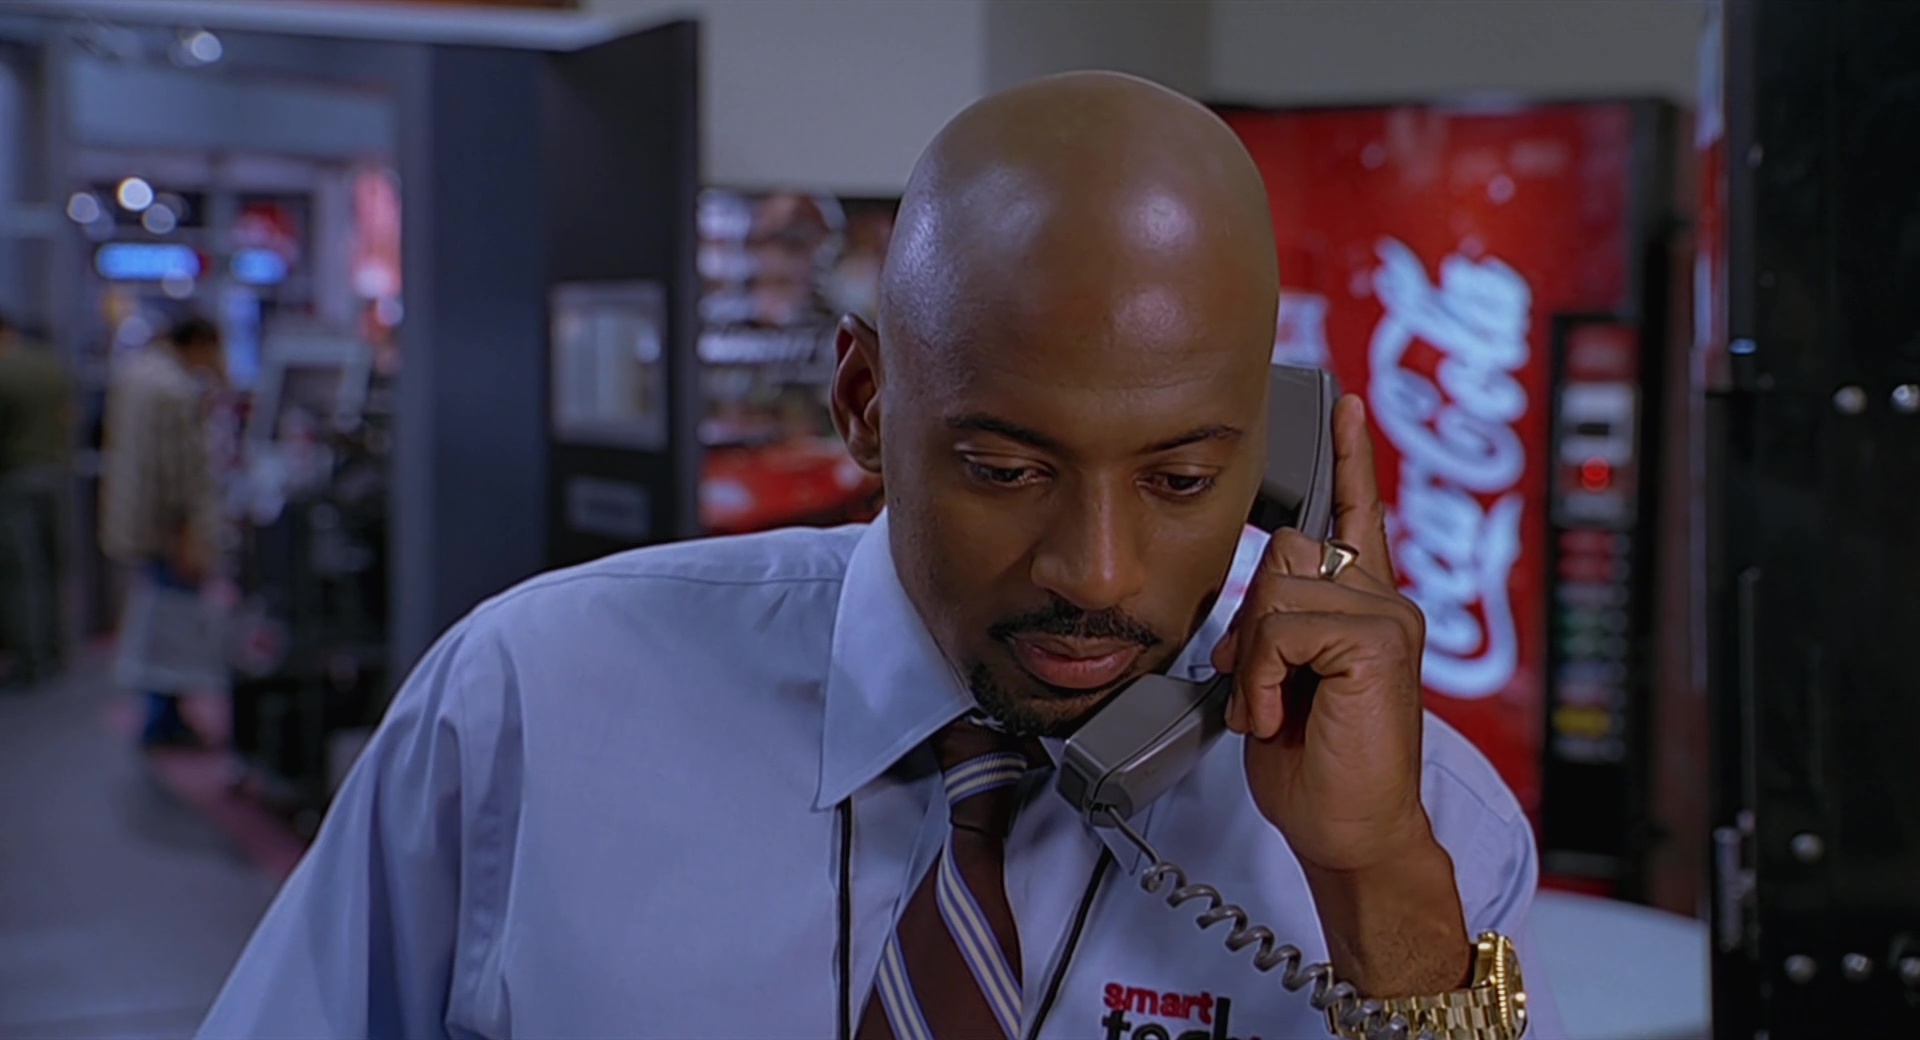 cocacola vending machine and romany malco in the 40year